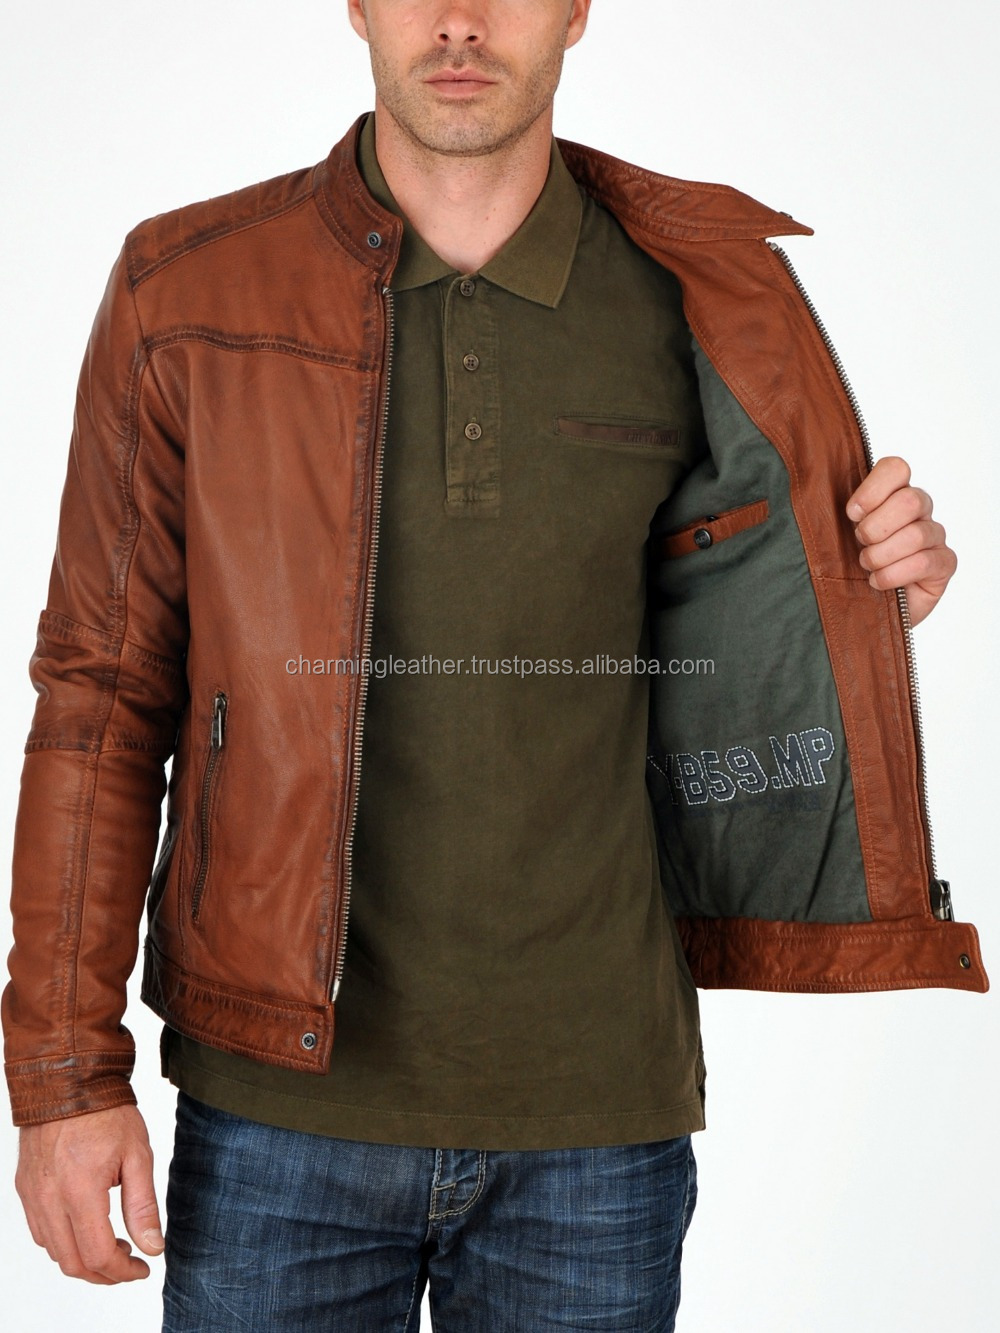 Light Brown Leather Fashion Jacket Pakistan Buy Leather Jackets